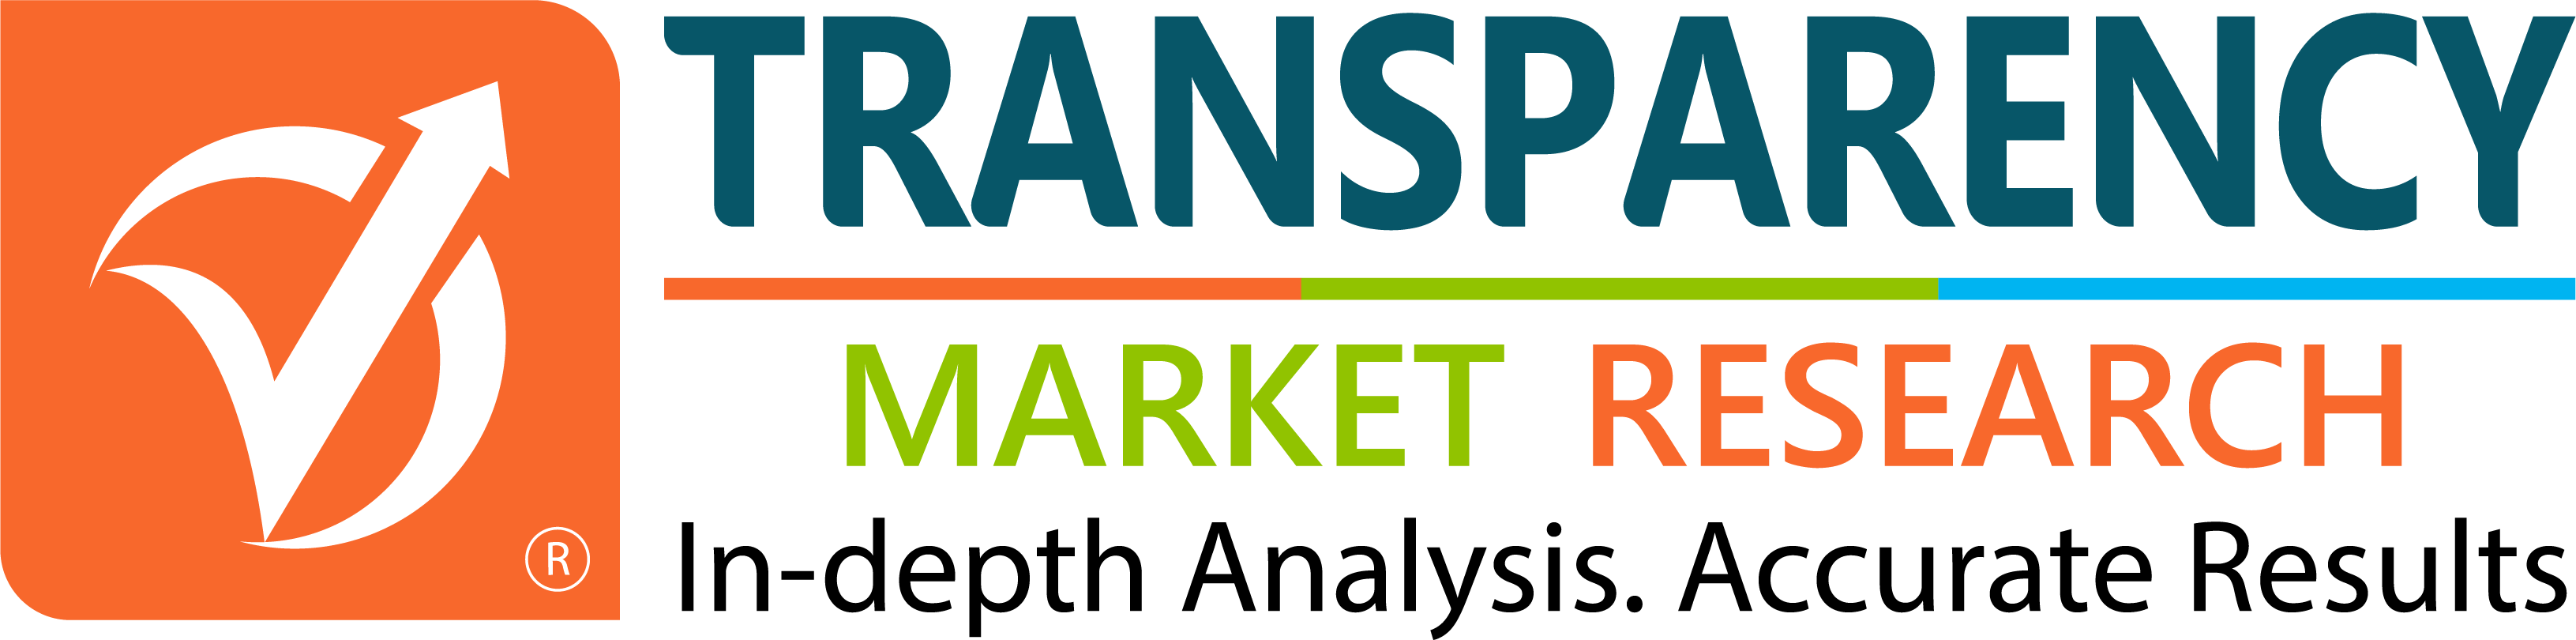 Telehealth Market Size to Reach US$ 19.5 Billion by 2025 at a CAGR of 13% | Transparency Market Research